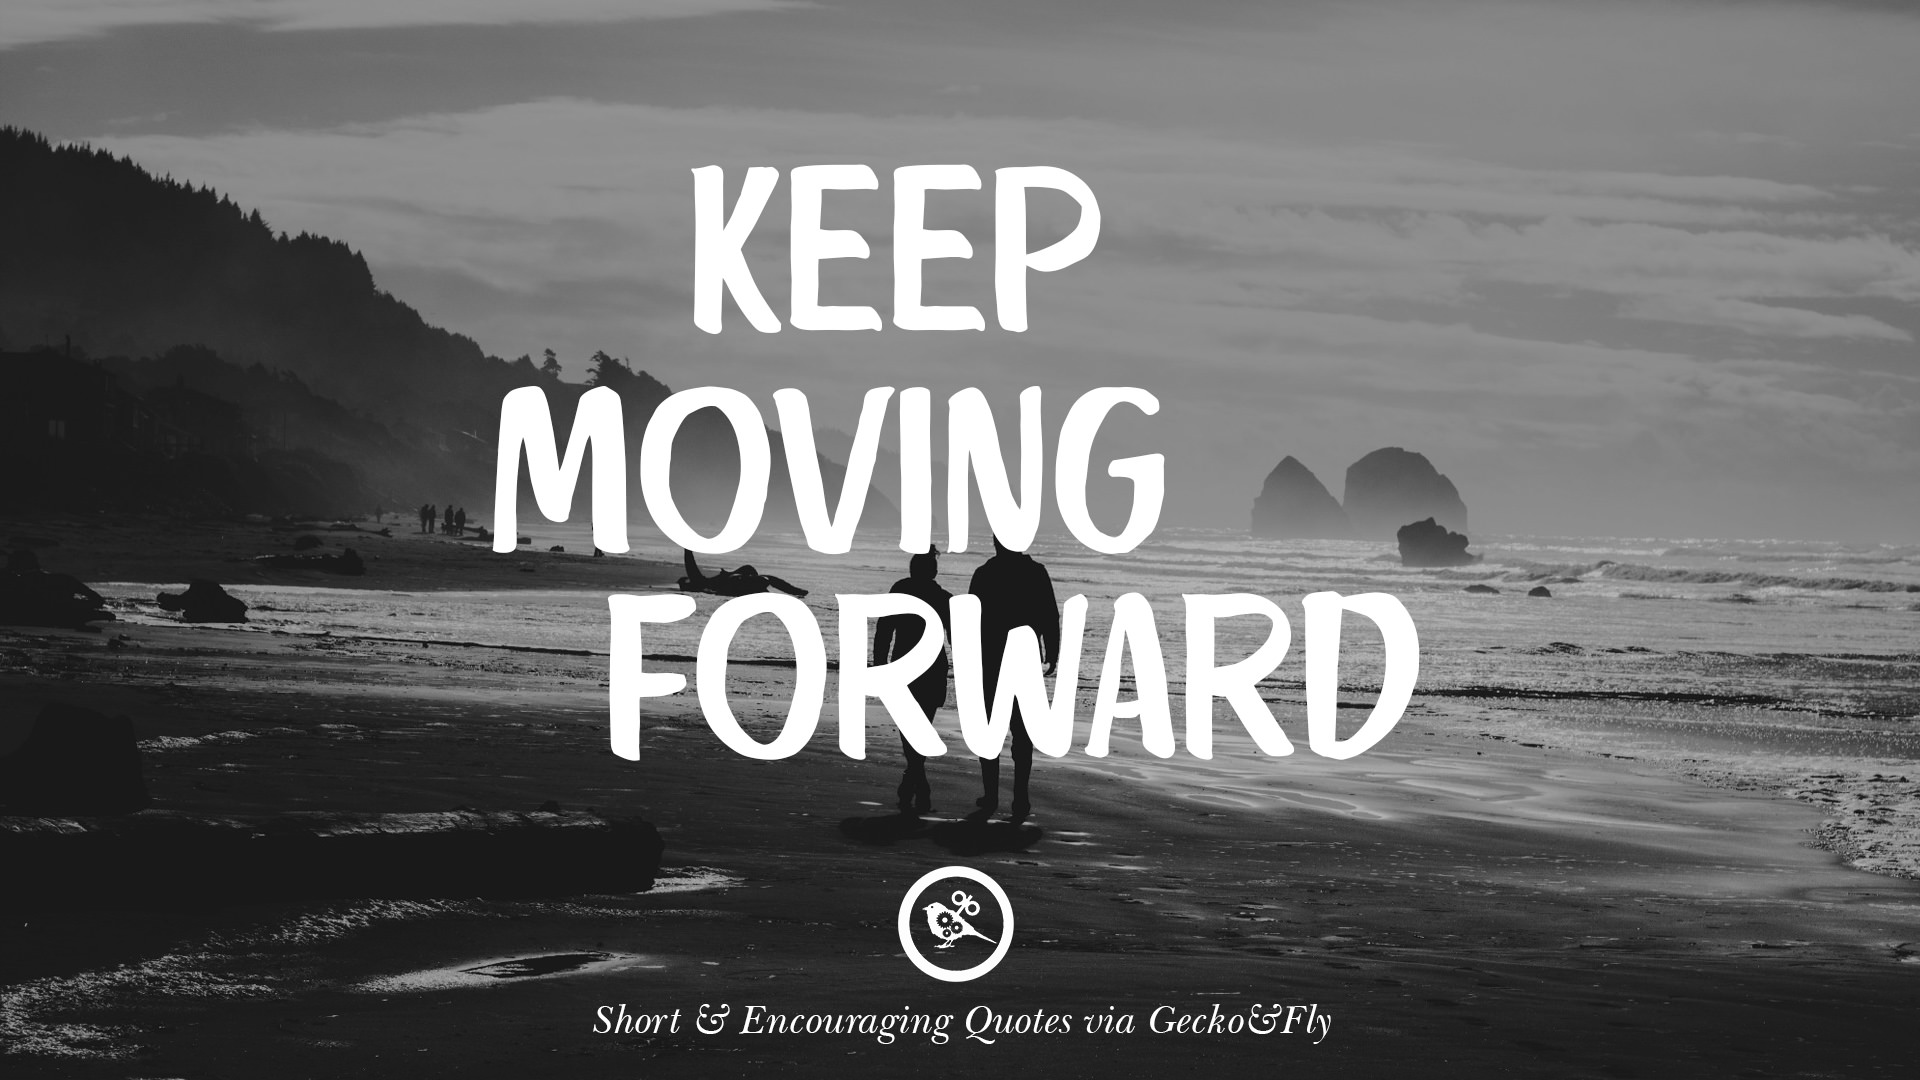 Inspiring Keep Moving Forward Quotes Pictures: 50 Beautiful Short, Nice And Encouraging Quotes For An